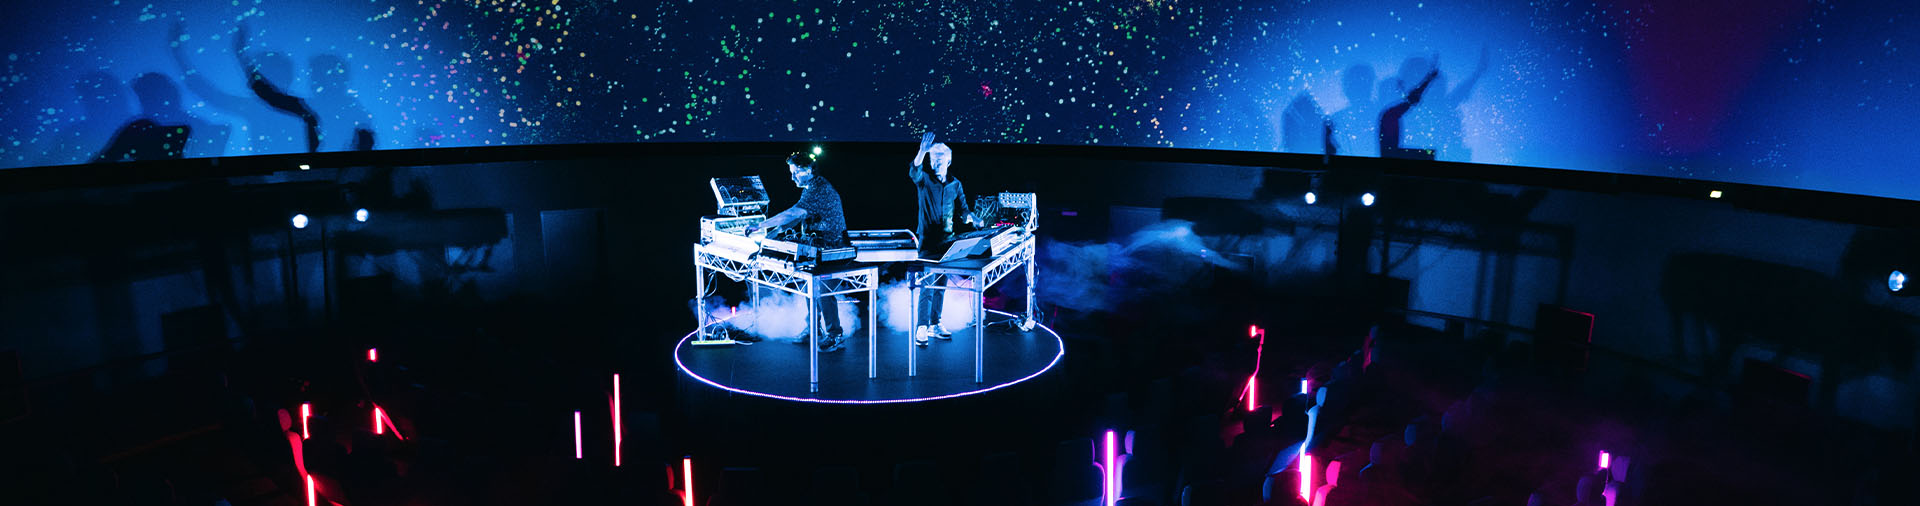 the-avalanches-at-the-melbourne-planetarium-by-liam-pethick-for-mushroom-creative-house-the-sound